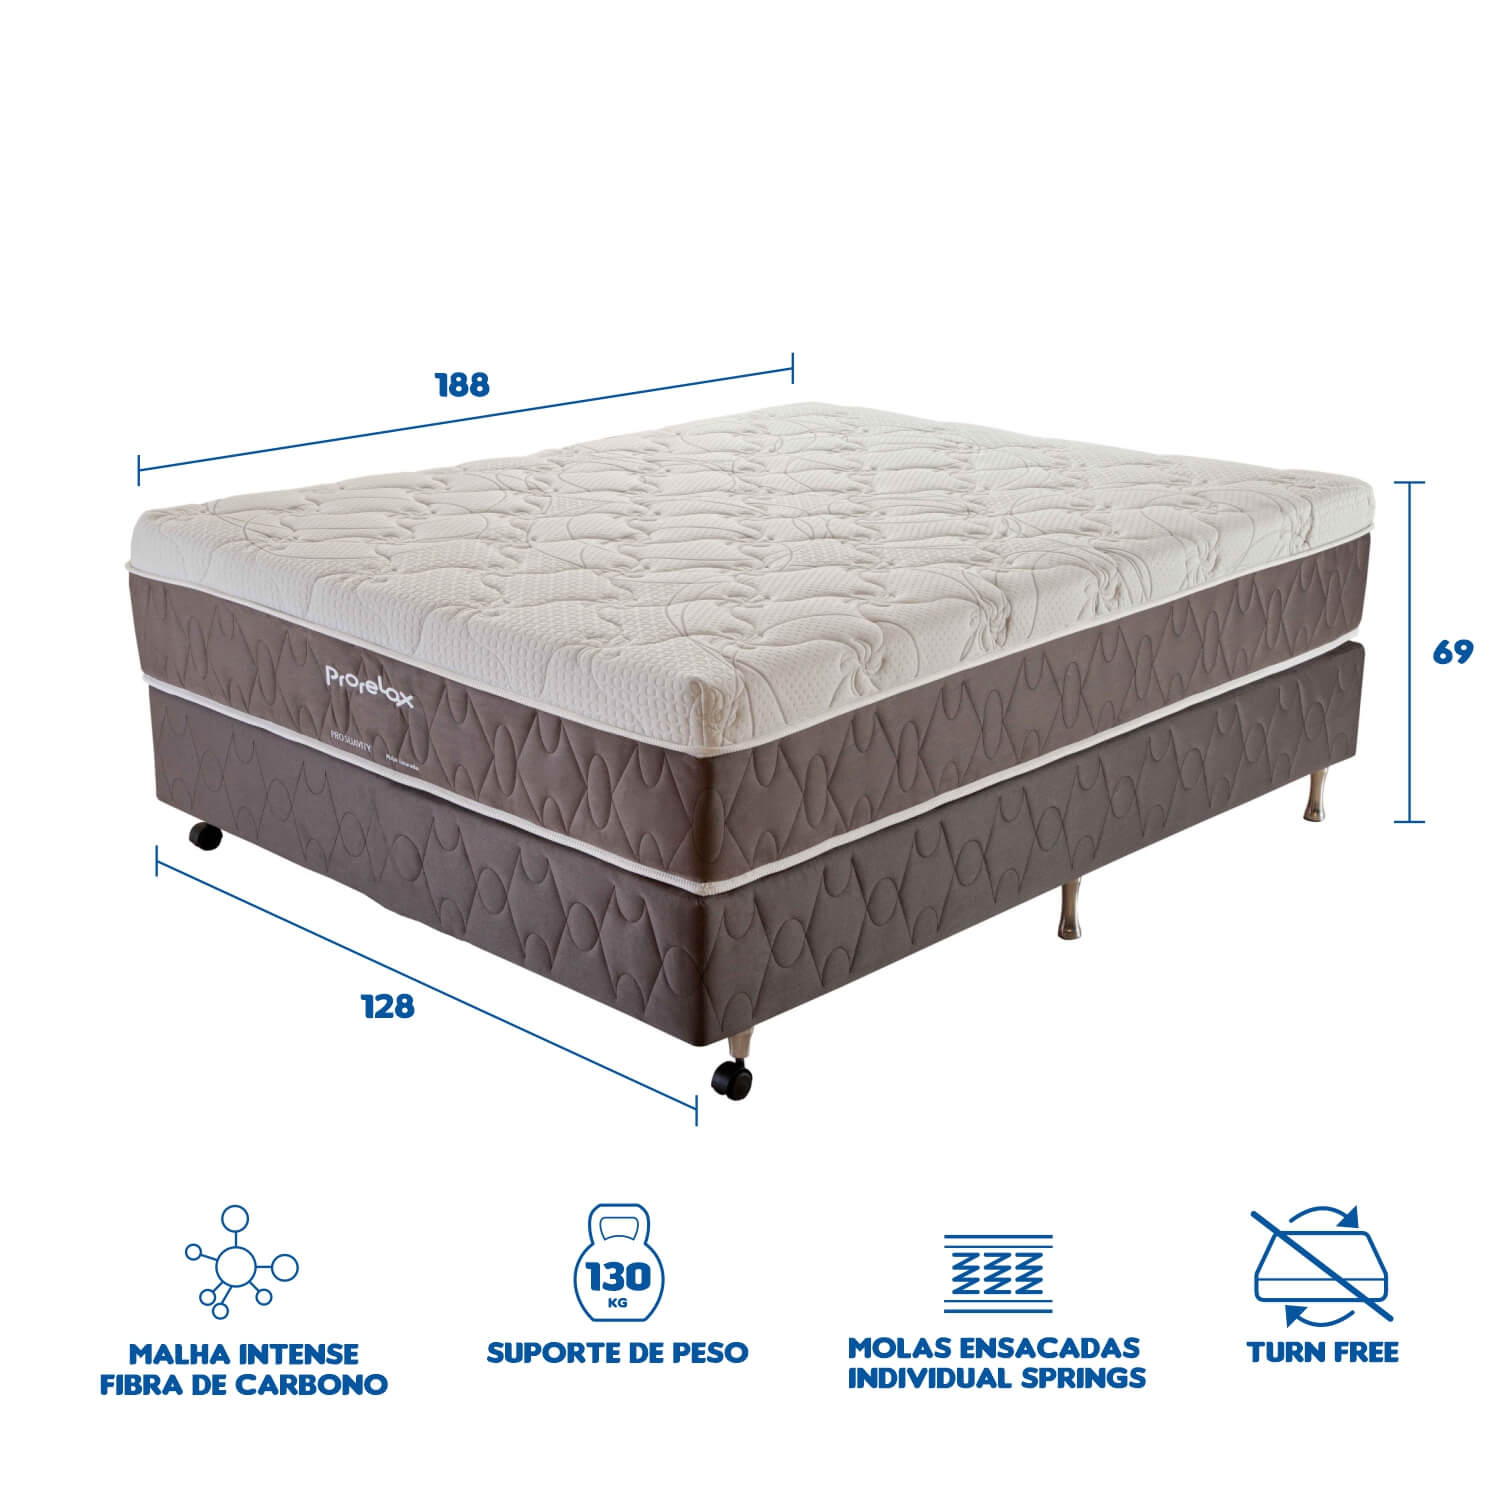 Cama Box Casal (Box + Colchão) Prorelax Pro Suavity 128x188 Pillow Top Turn Free